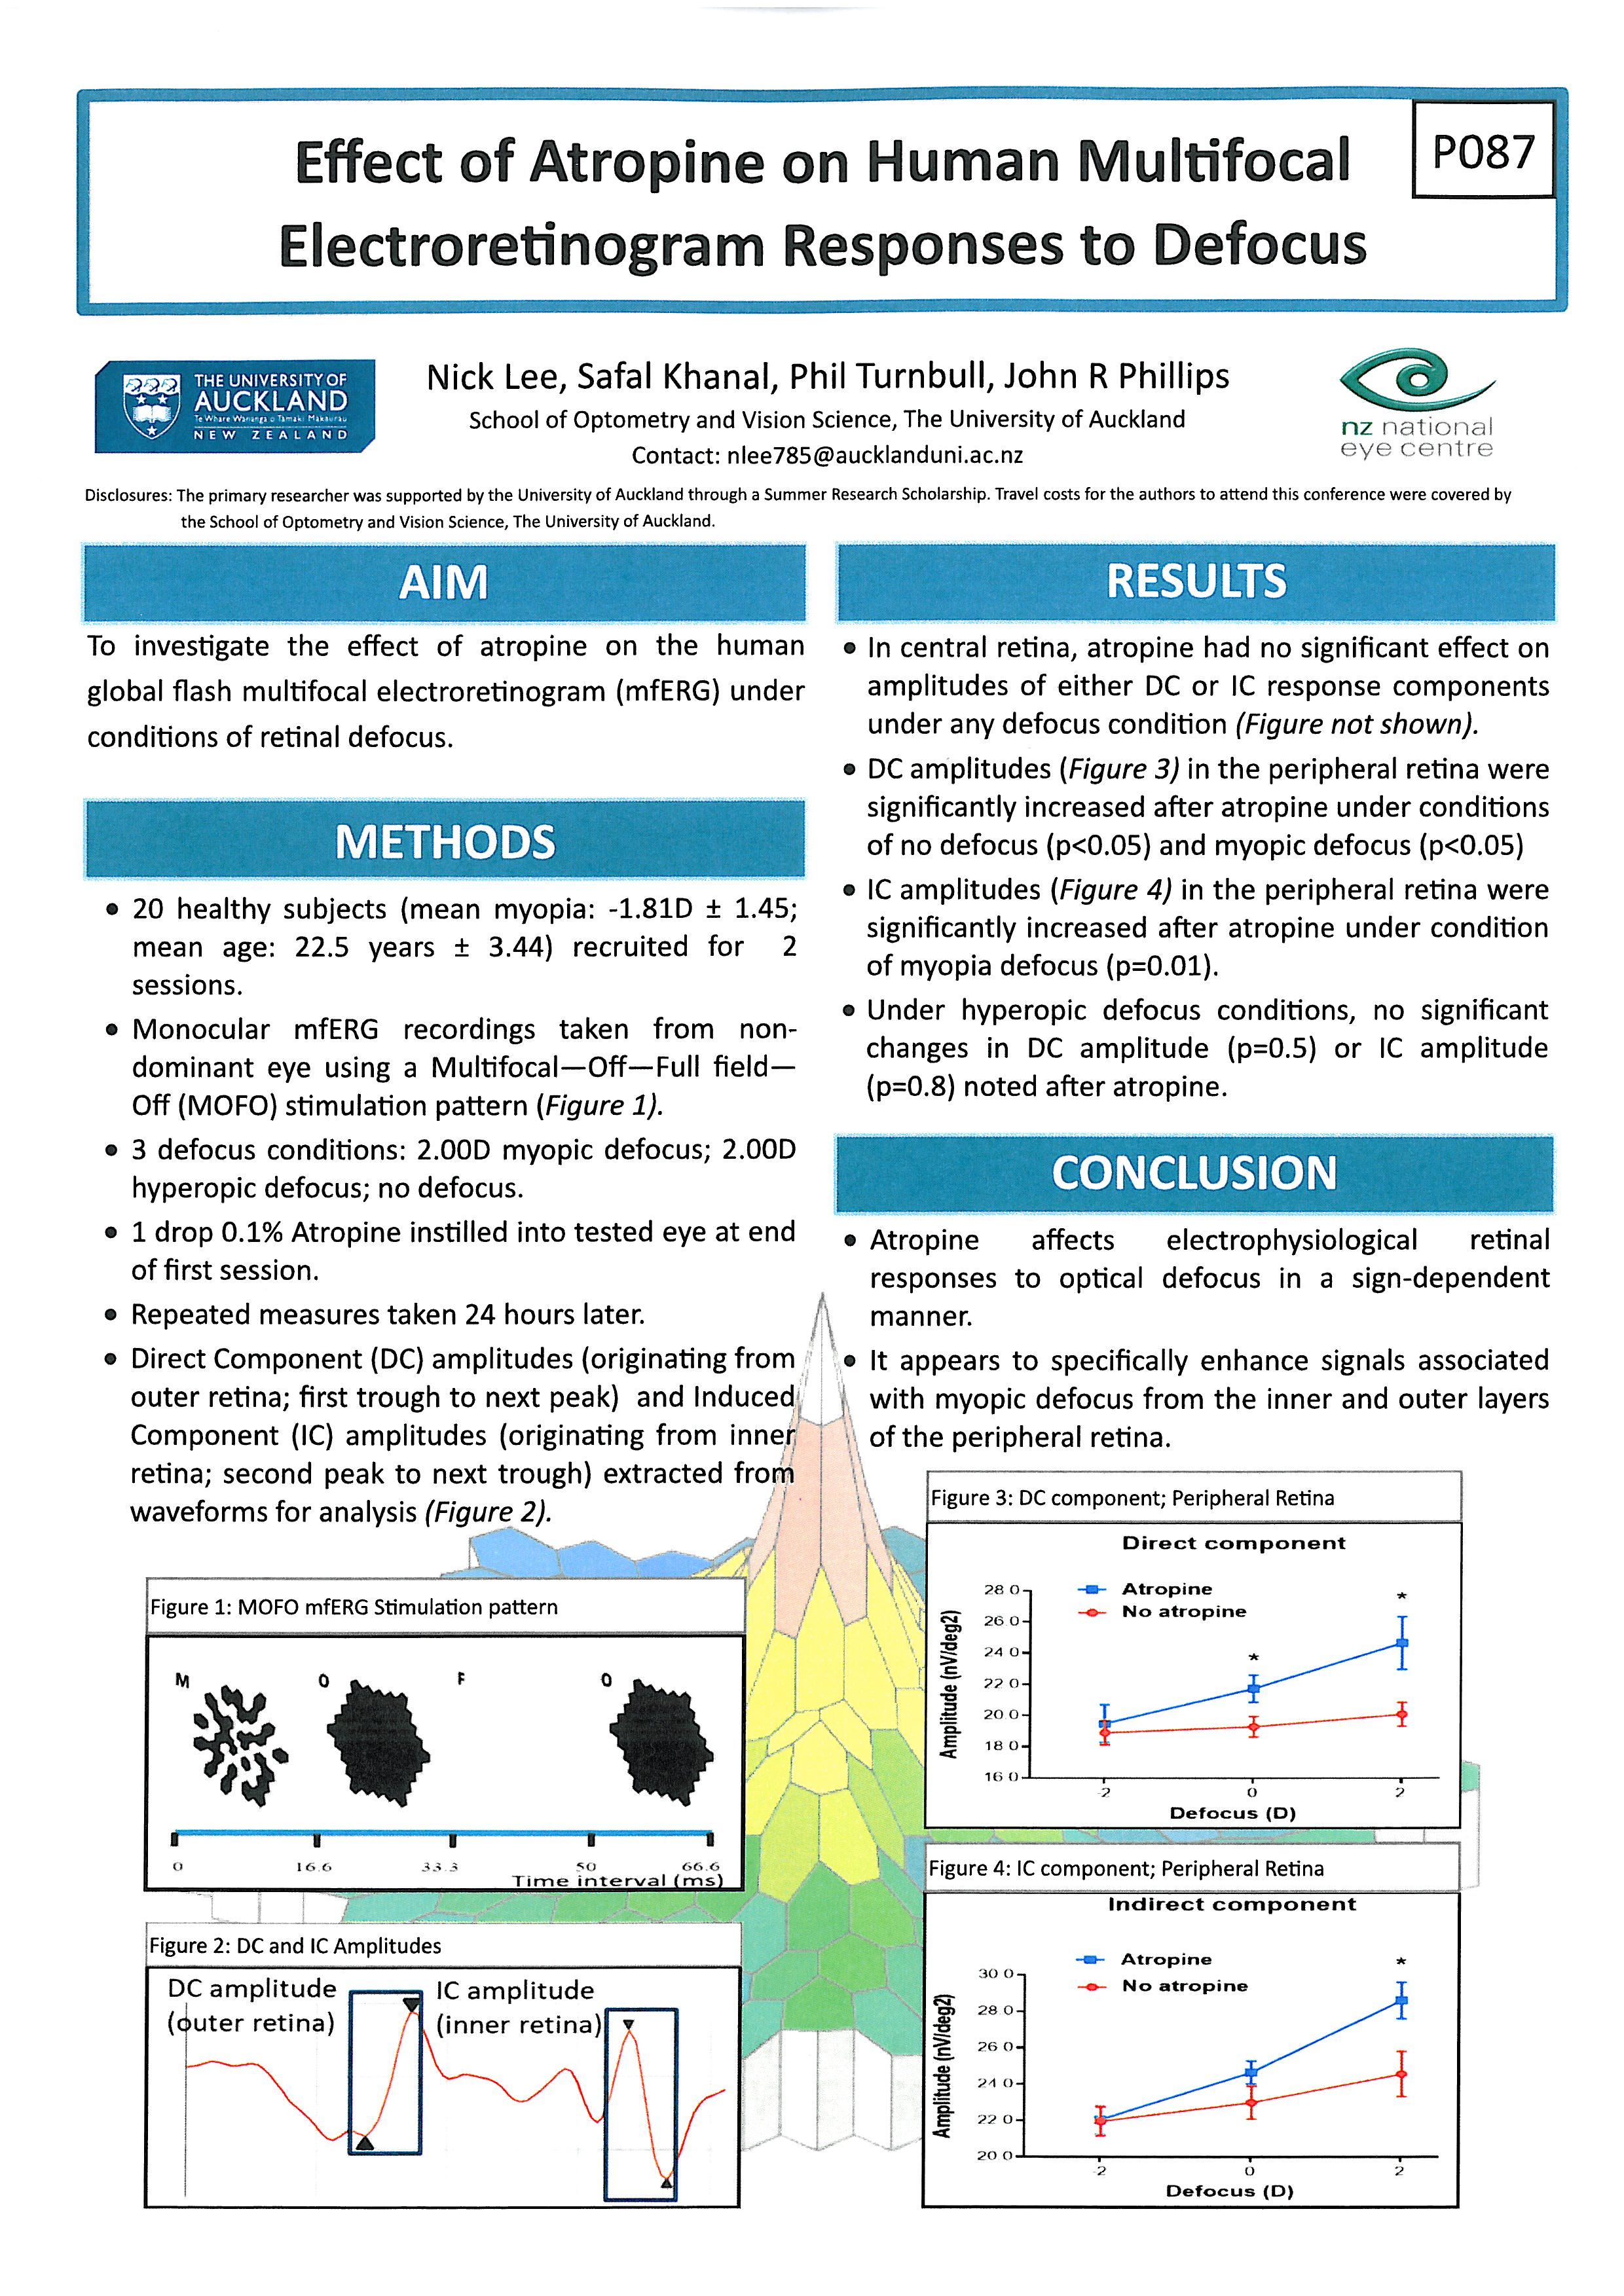 Nick's scientific poster presented at the International Myopia Conference (Birmingham, 2017) by Nick Lee, Safal Khanal, Phillip Turnbull and John Phillips. For more information please contact:  nlee785@aucklanduni.ac.nz .